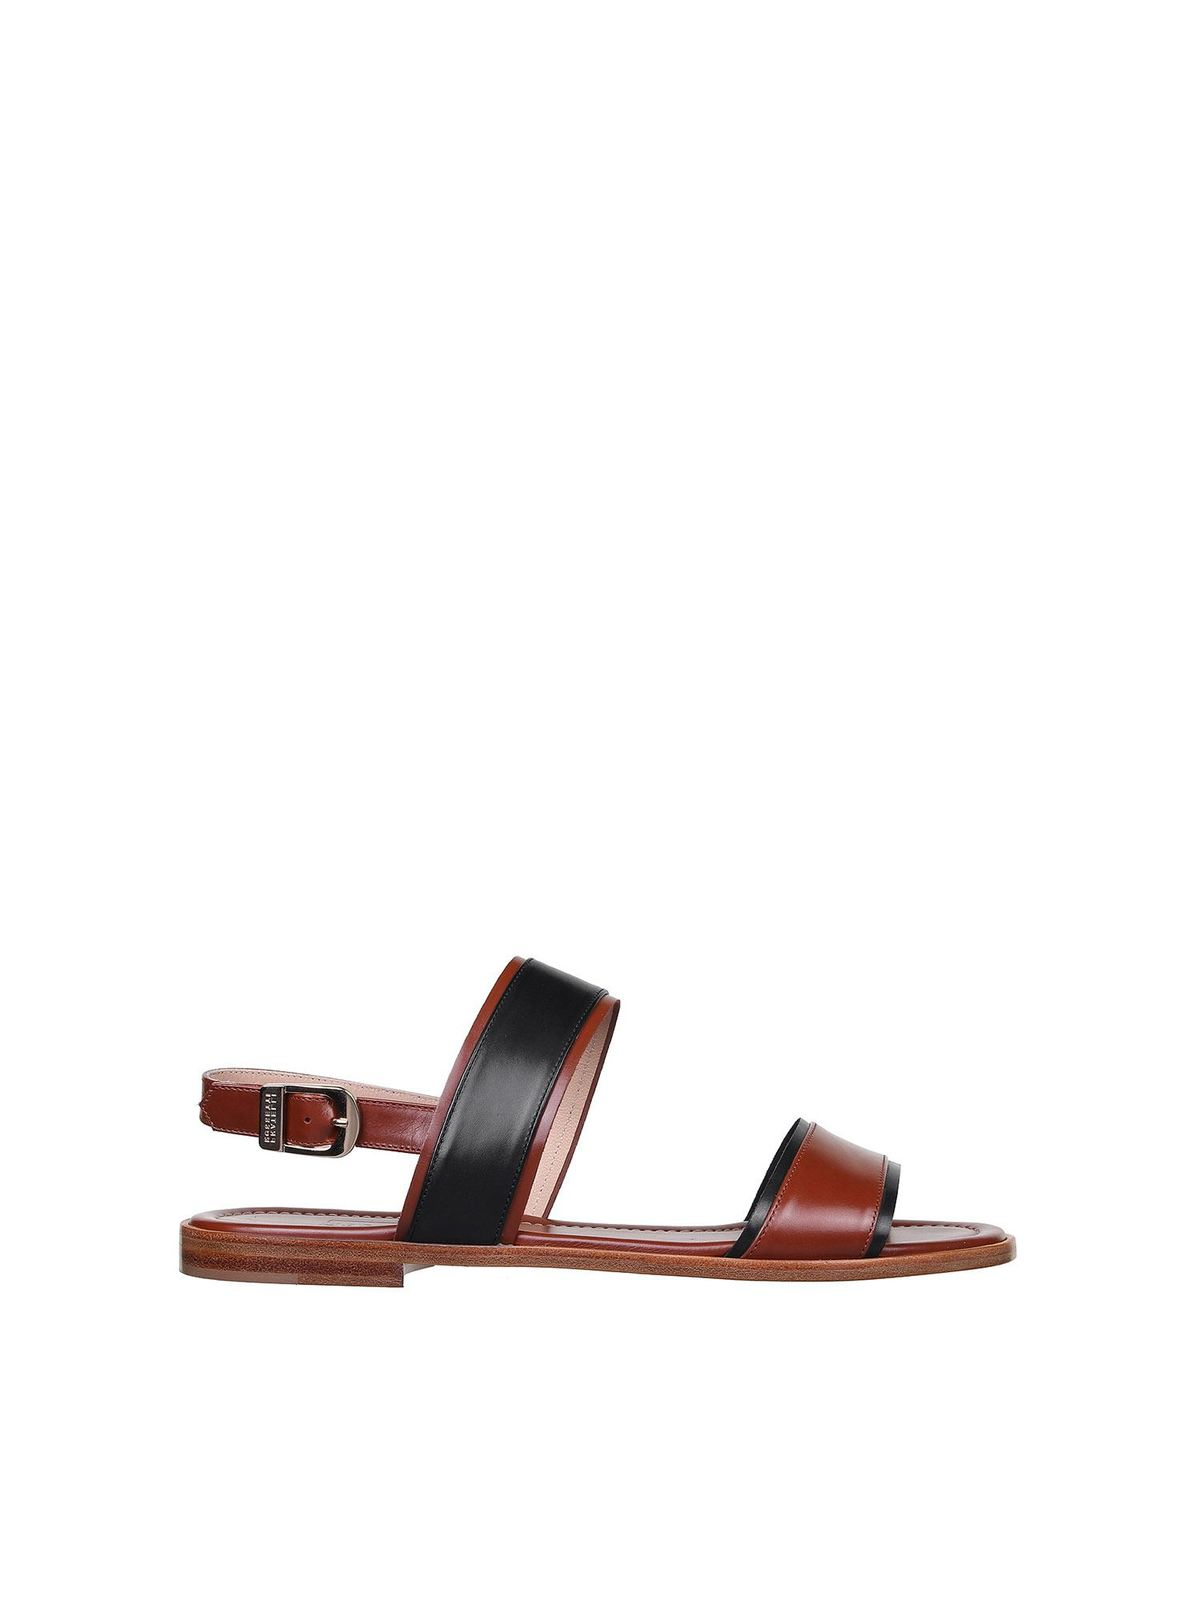 Fratelli Rossetti TWO-TONE SANDALS IN BROWN AND BLACK